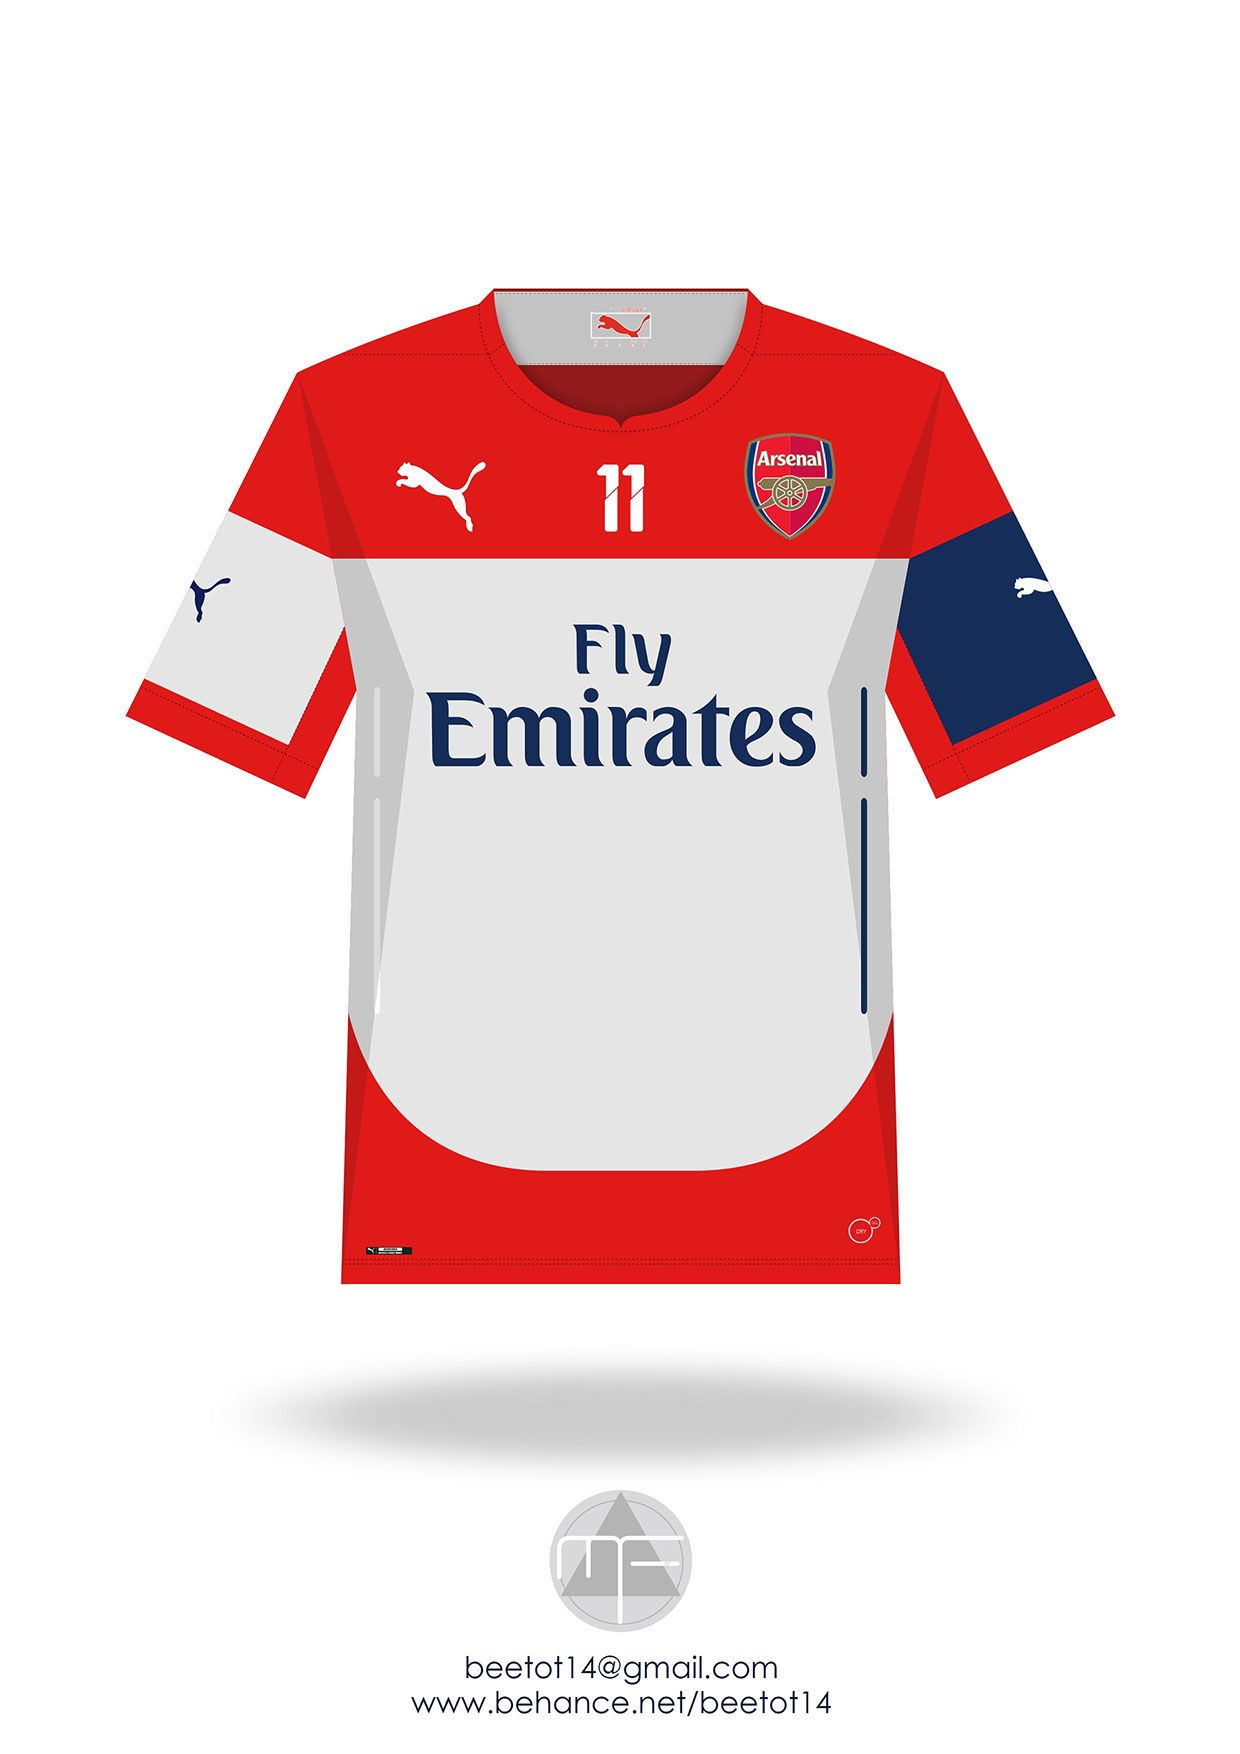 timeless design a8d14 ff13e Arsenal 2005-2015 Kit Collection on Behance | Arsenal ...